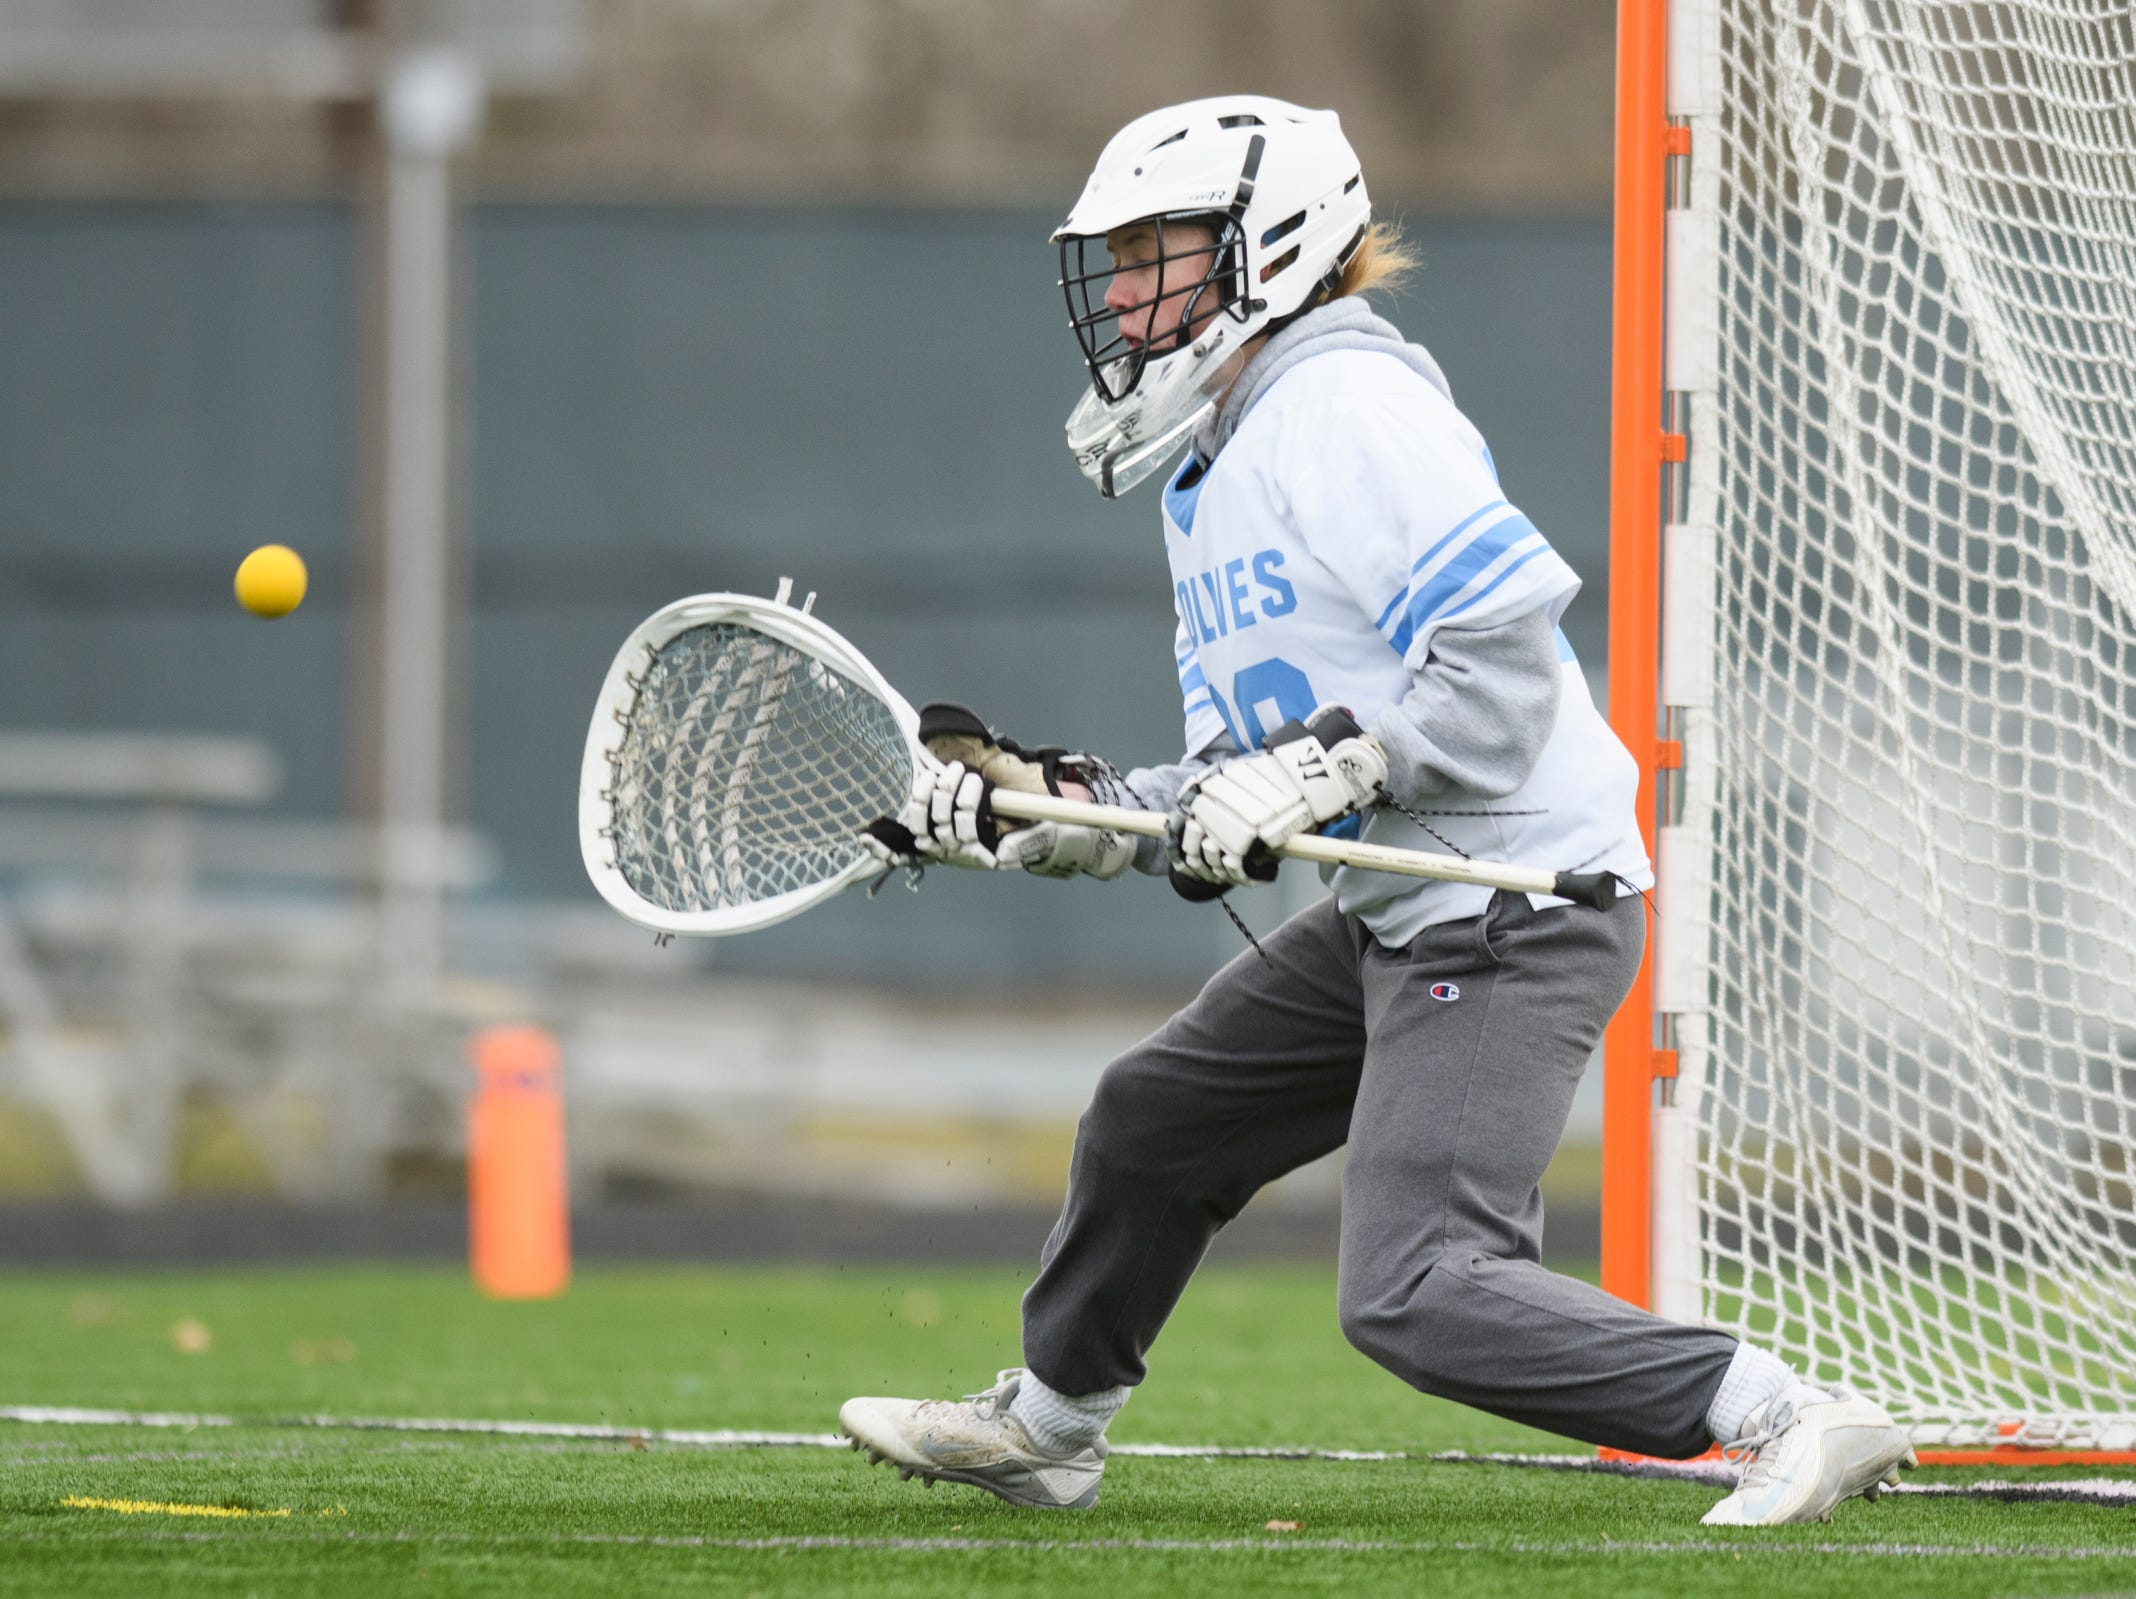 South Burlington goalie Claire Phillips (00) makes a save during the girls lacrosse game between the Rice Green Knights and the South Burlington Wolves at South Burlington High School on Tuesday afternoon April 16, 2019 in South Burlington, Vermont.